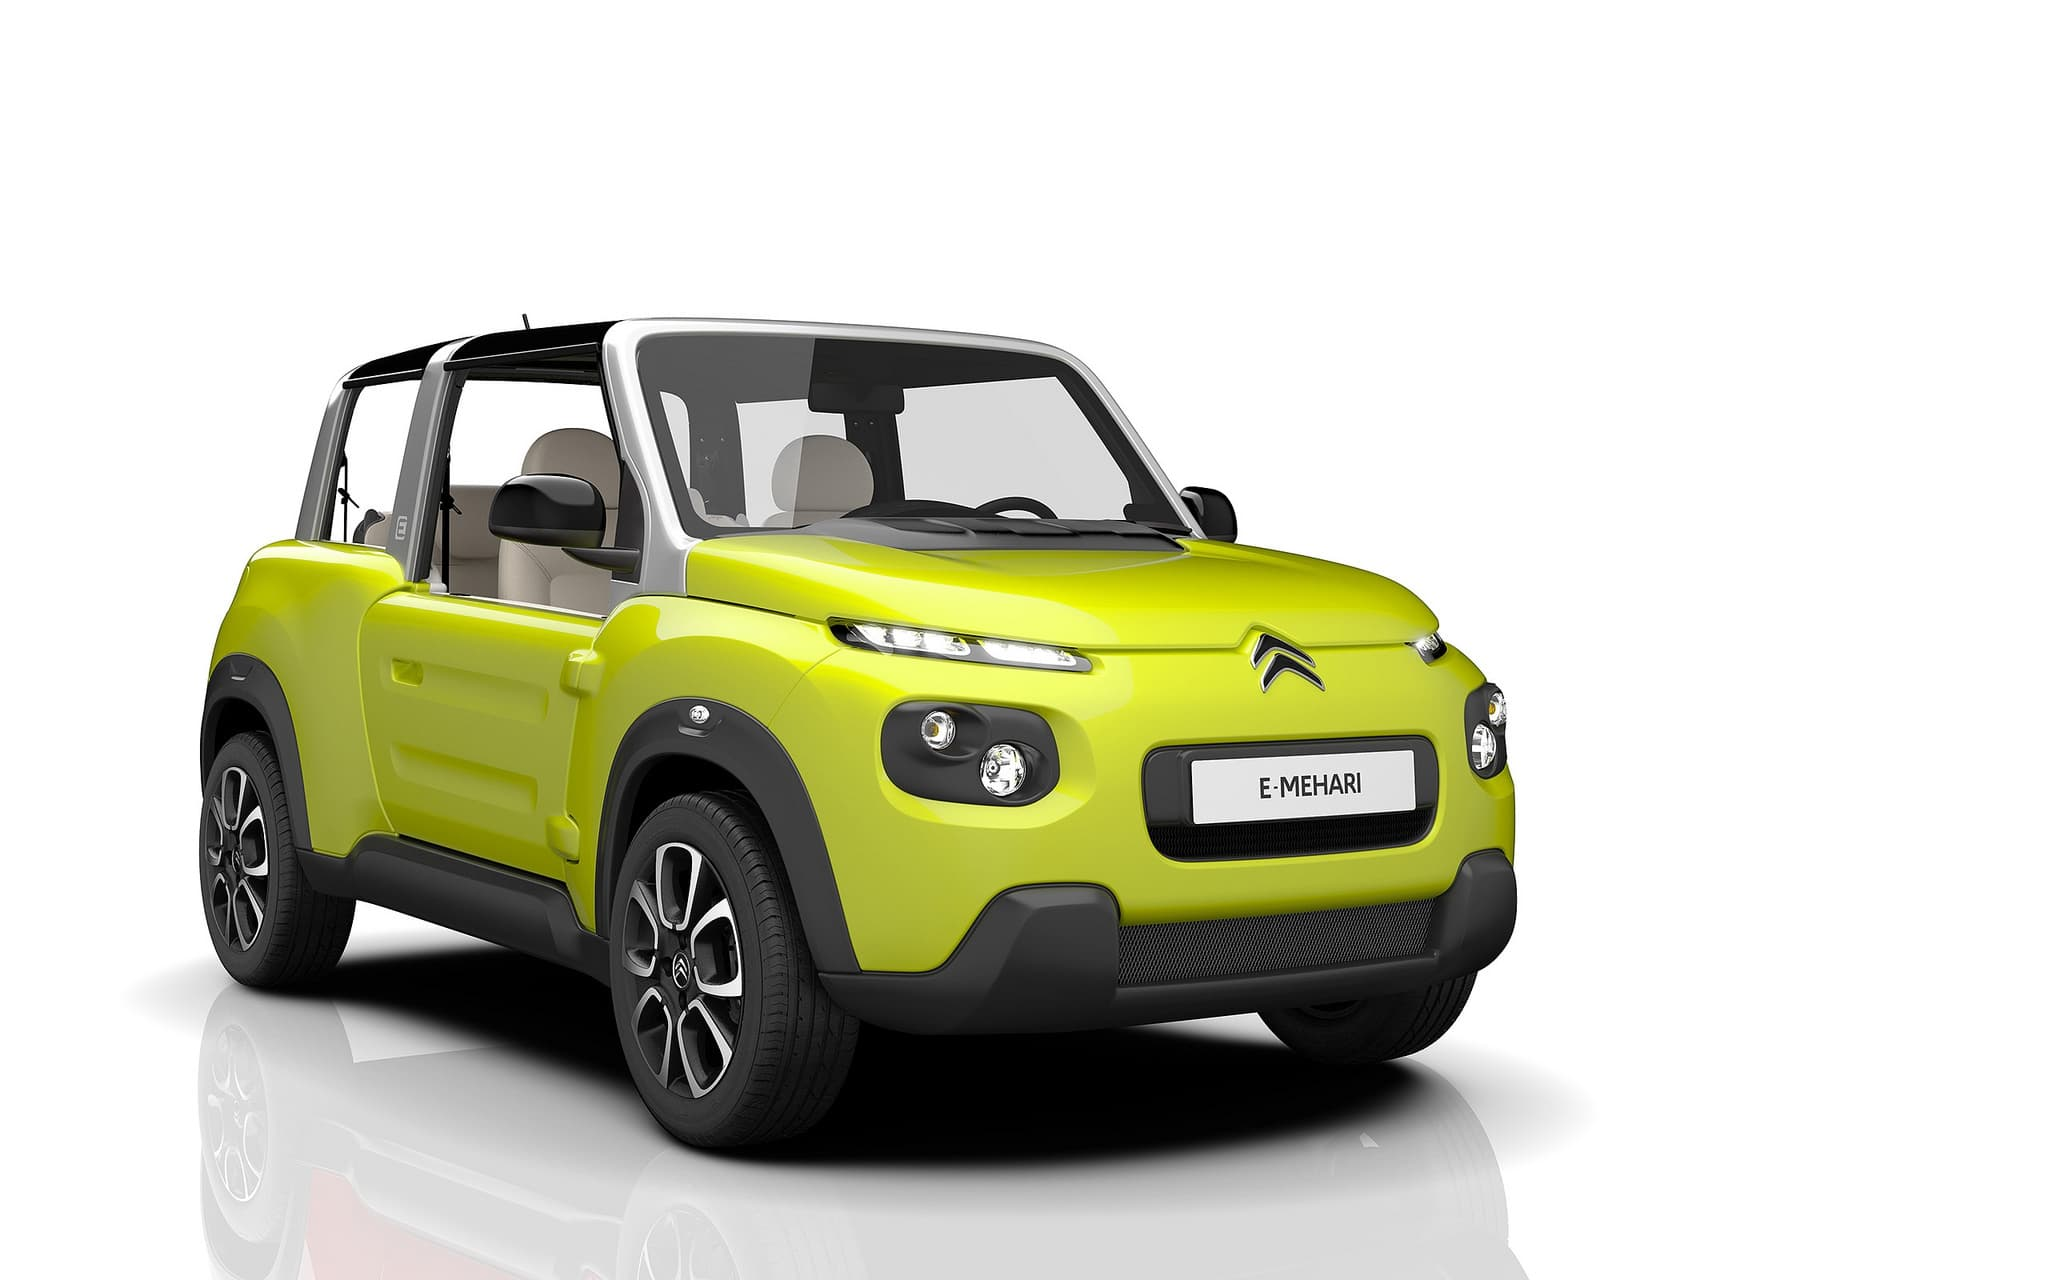 Citroen E-Mehari 2016 yellow Download, pictures